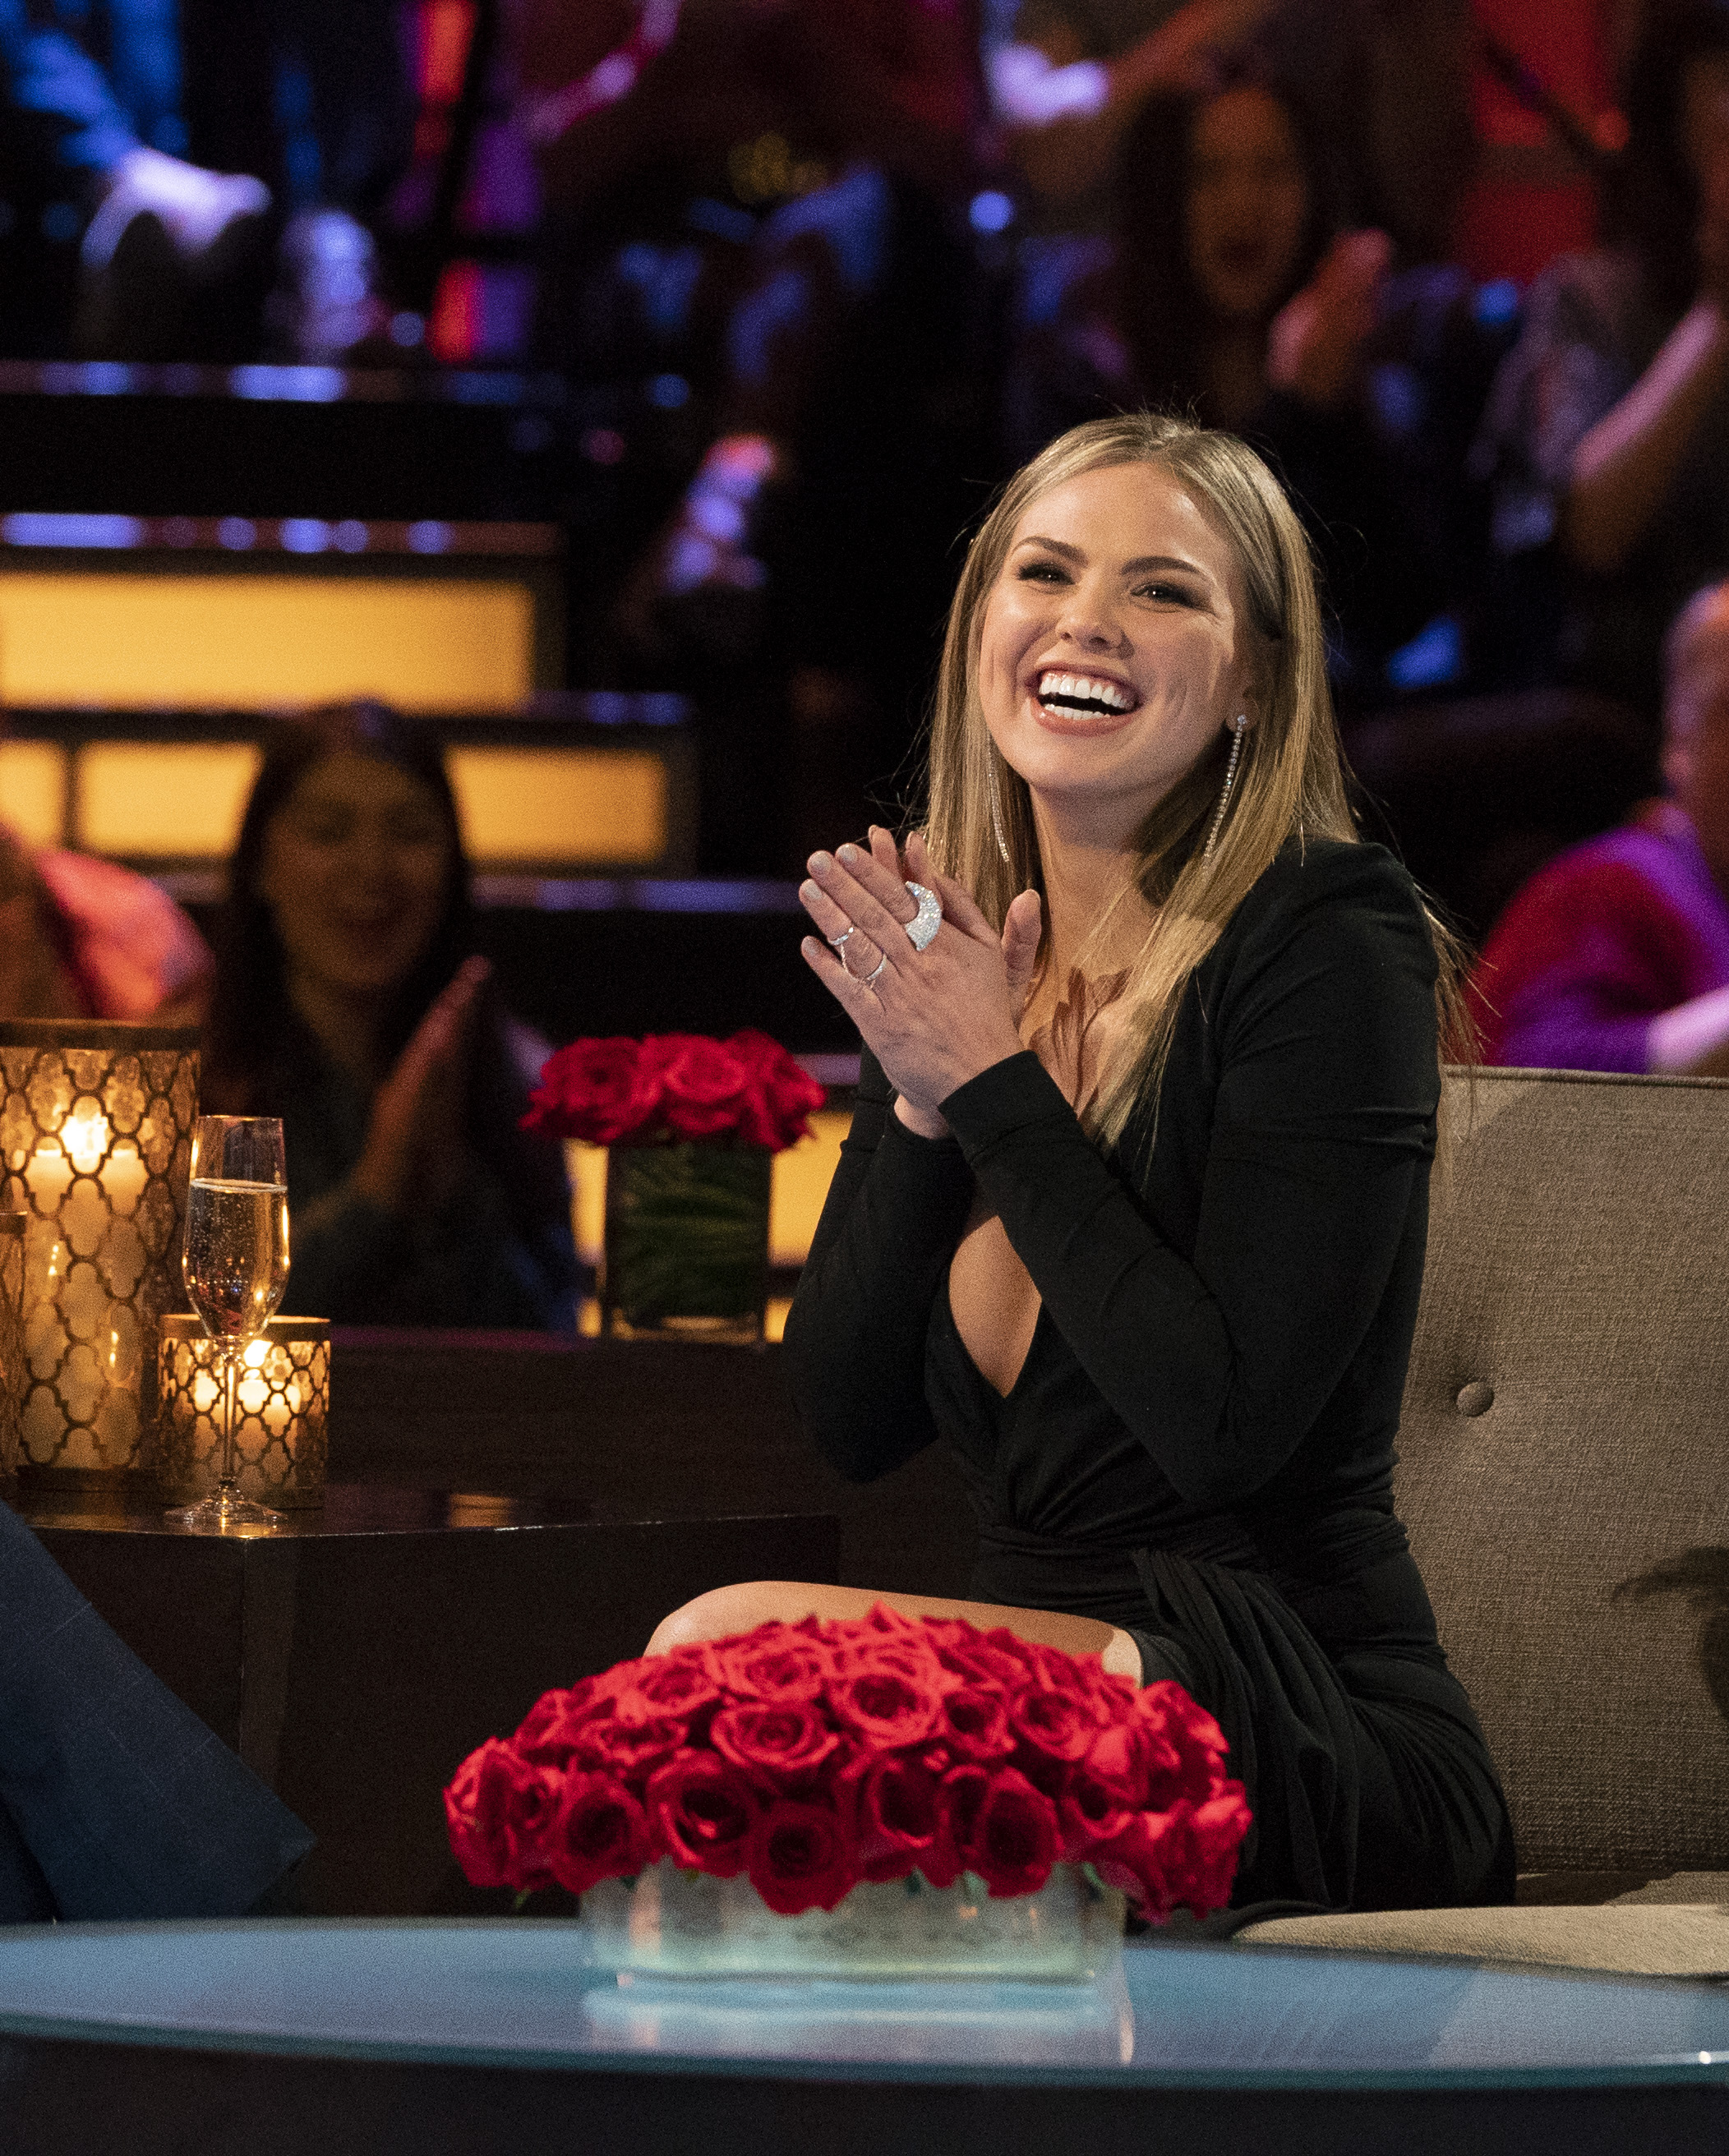 But now, Hannah Beast is about to the be the one breaking up the fights, rather than starting them, as she takes her seat on the throne as the star of Bachelorette Season 15! (Image: ABC/Eric McCandless)